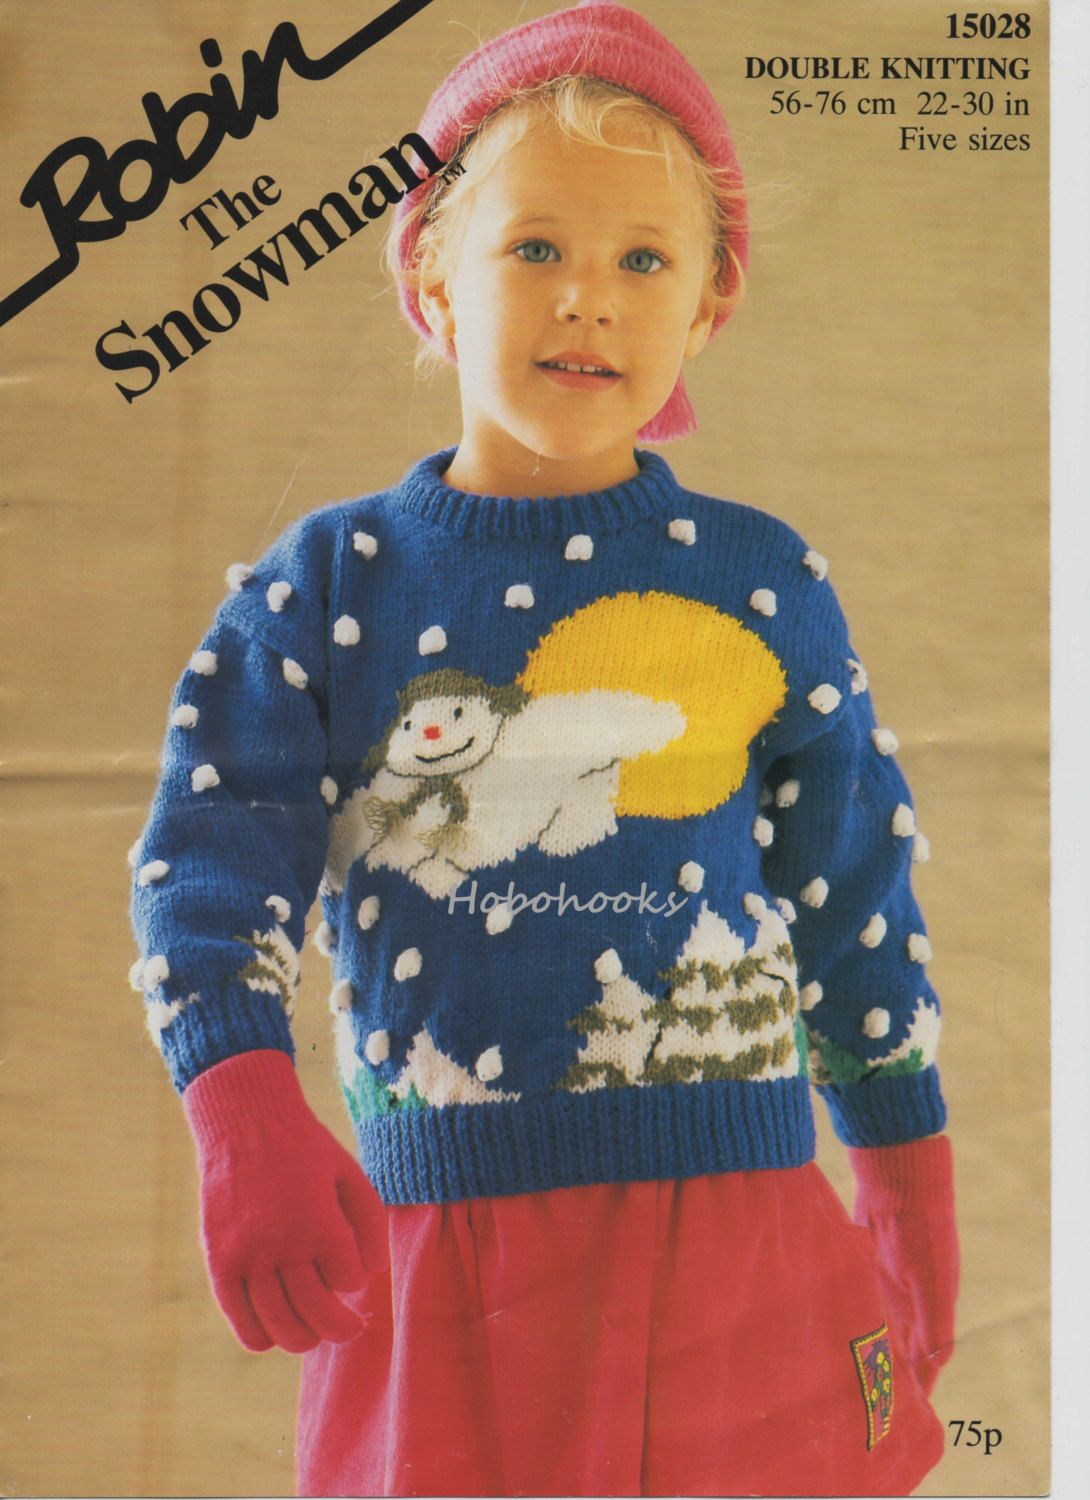 Knitting Patterns For Children s Christmas Jumpers : childrens knitting pattern pdf download childrens sweater knitting pattern sn...